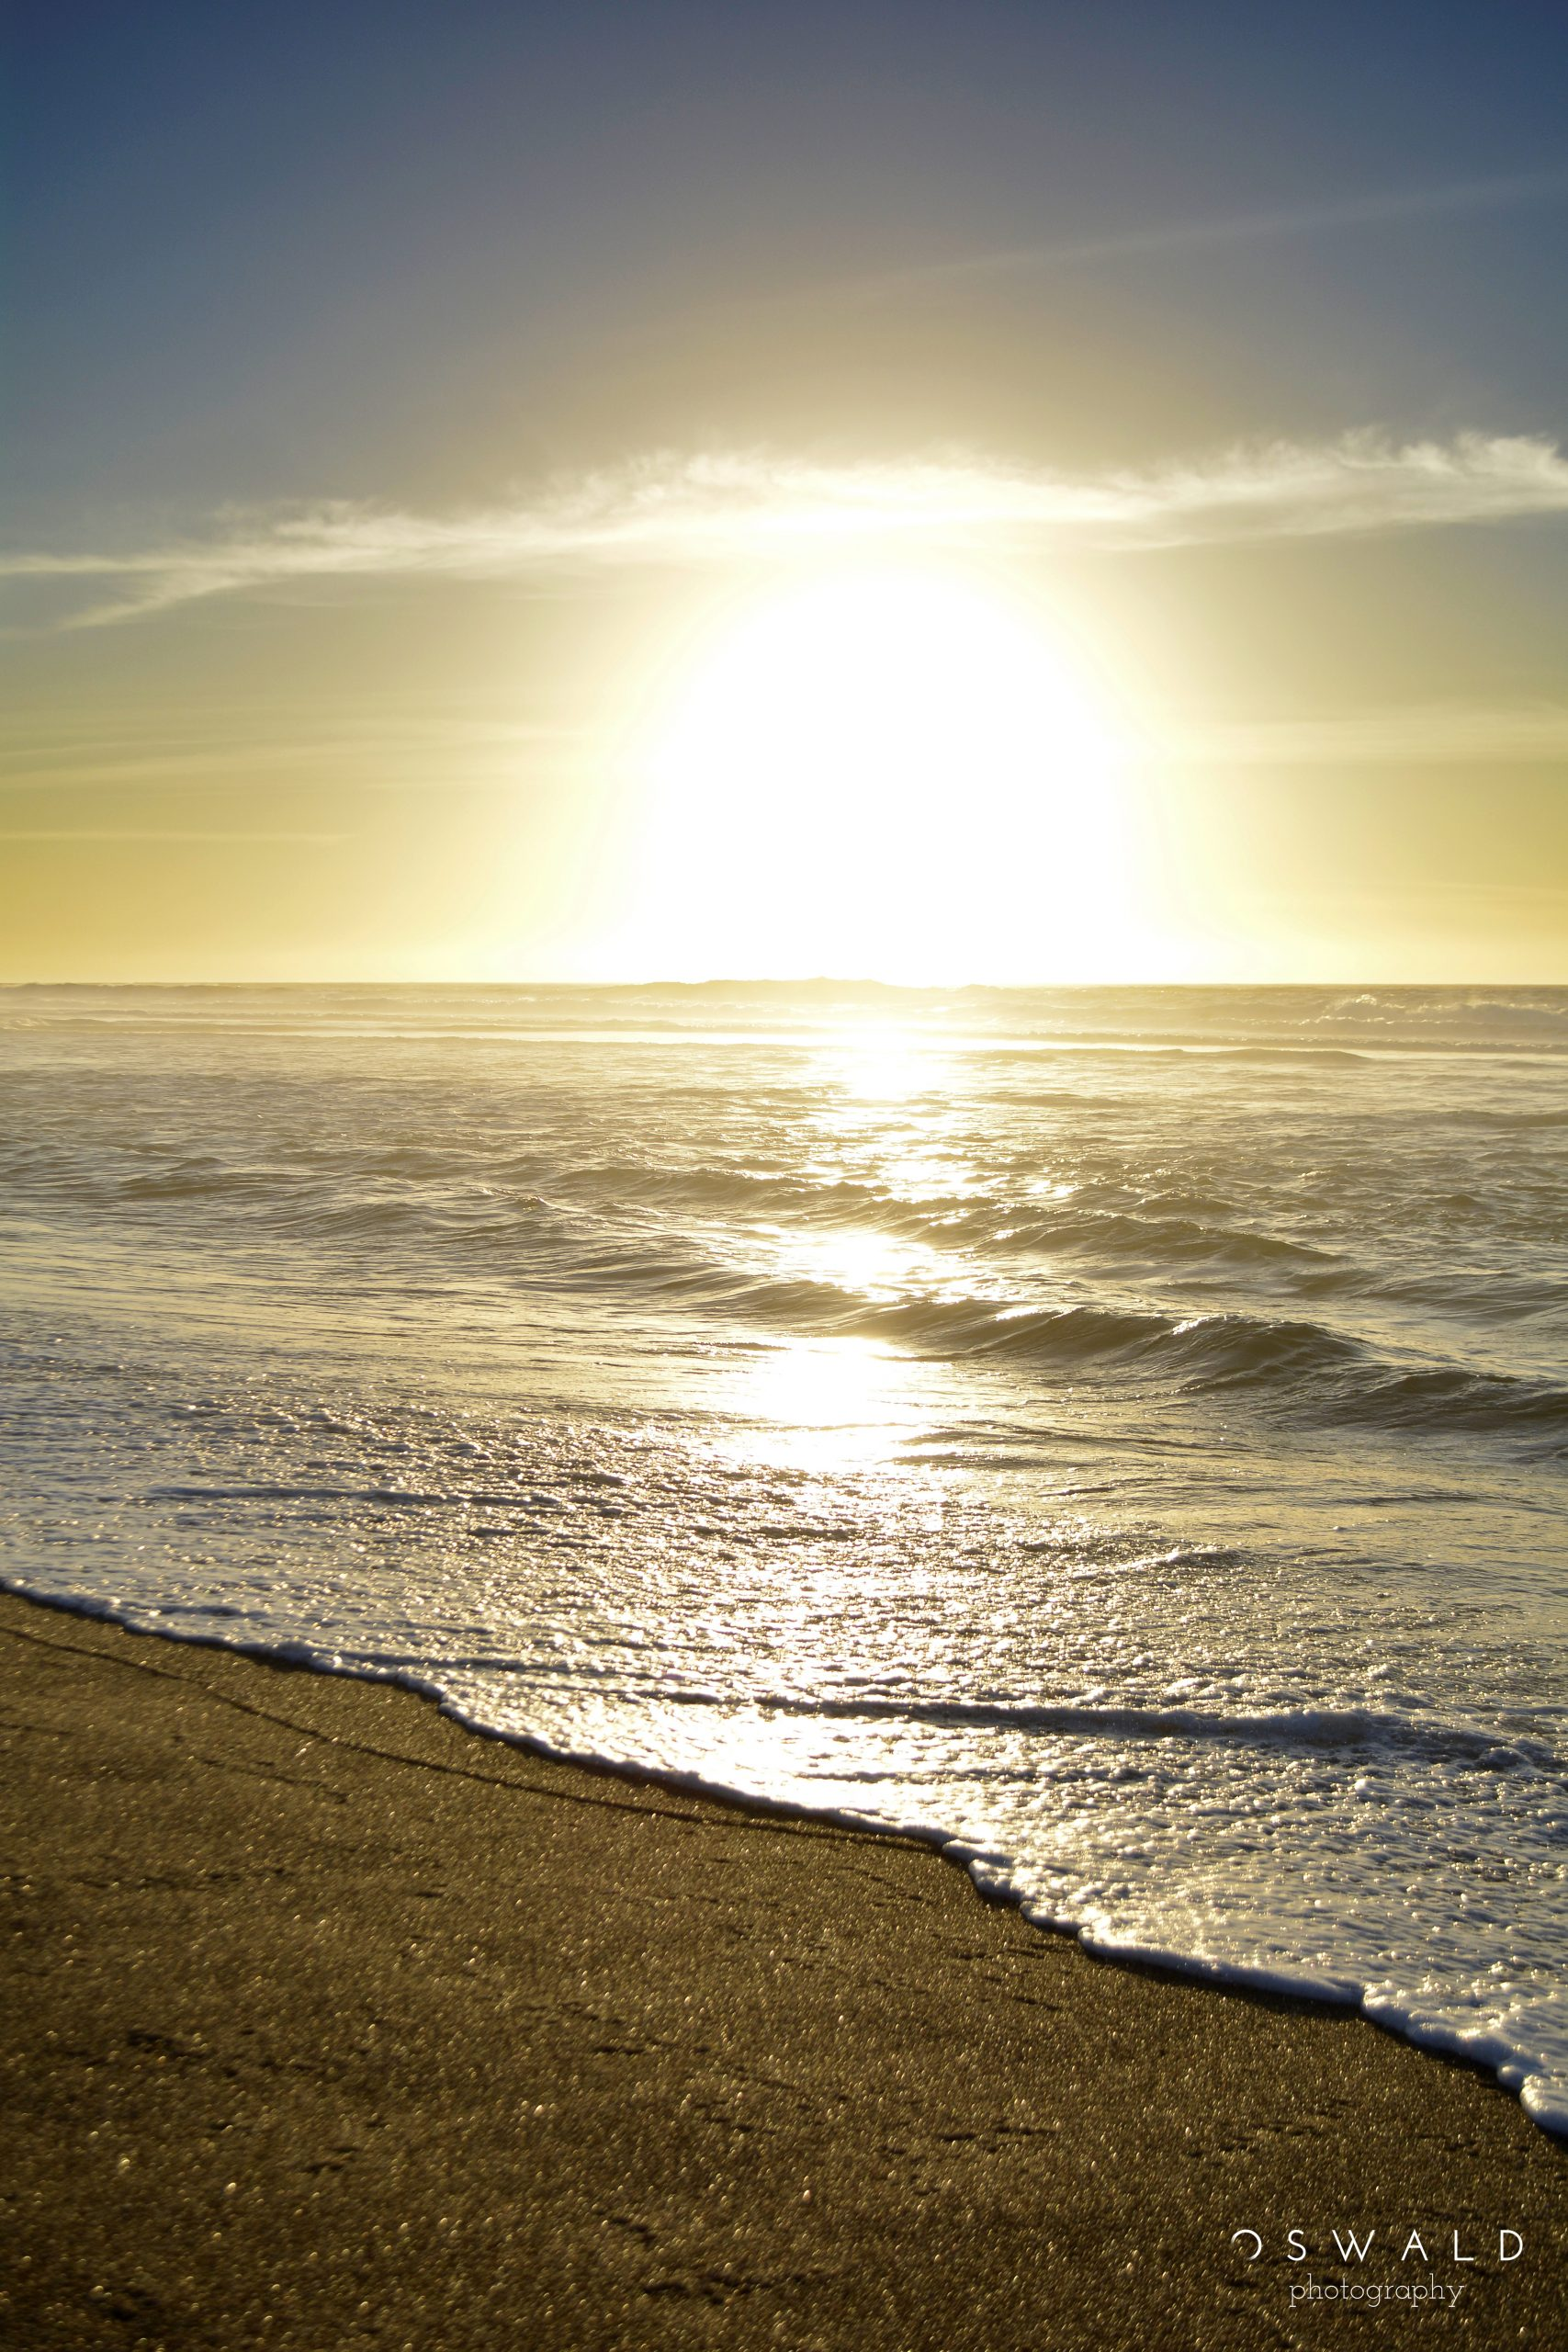 The sun sets behind the waves at Point Reyes National Seashore in Northern California.